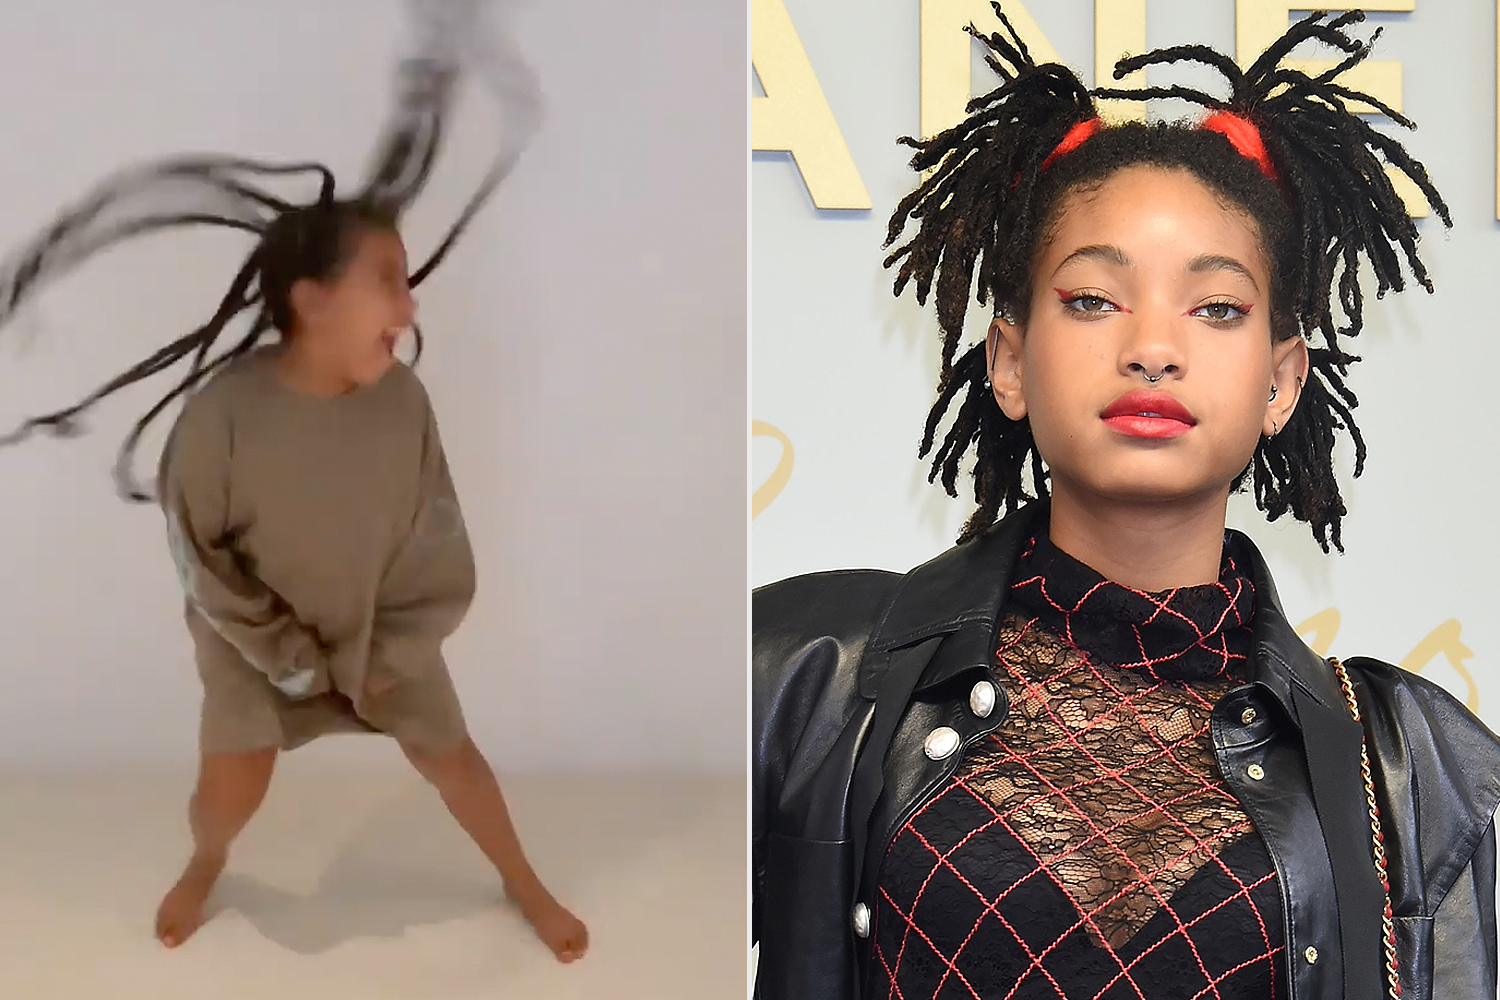 North West, Willow Smith